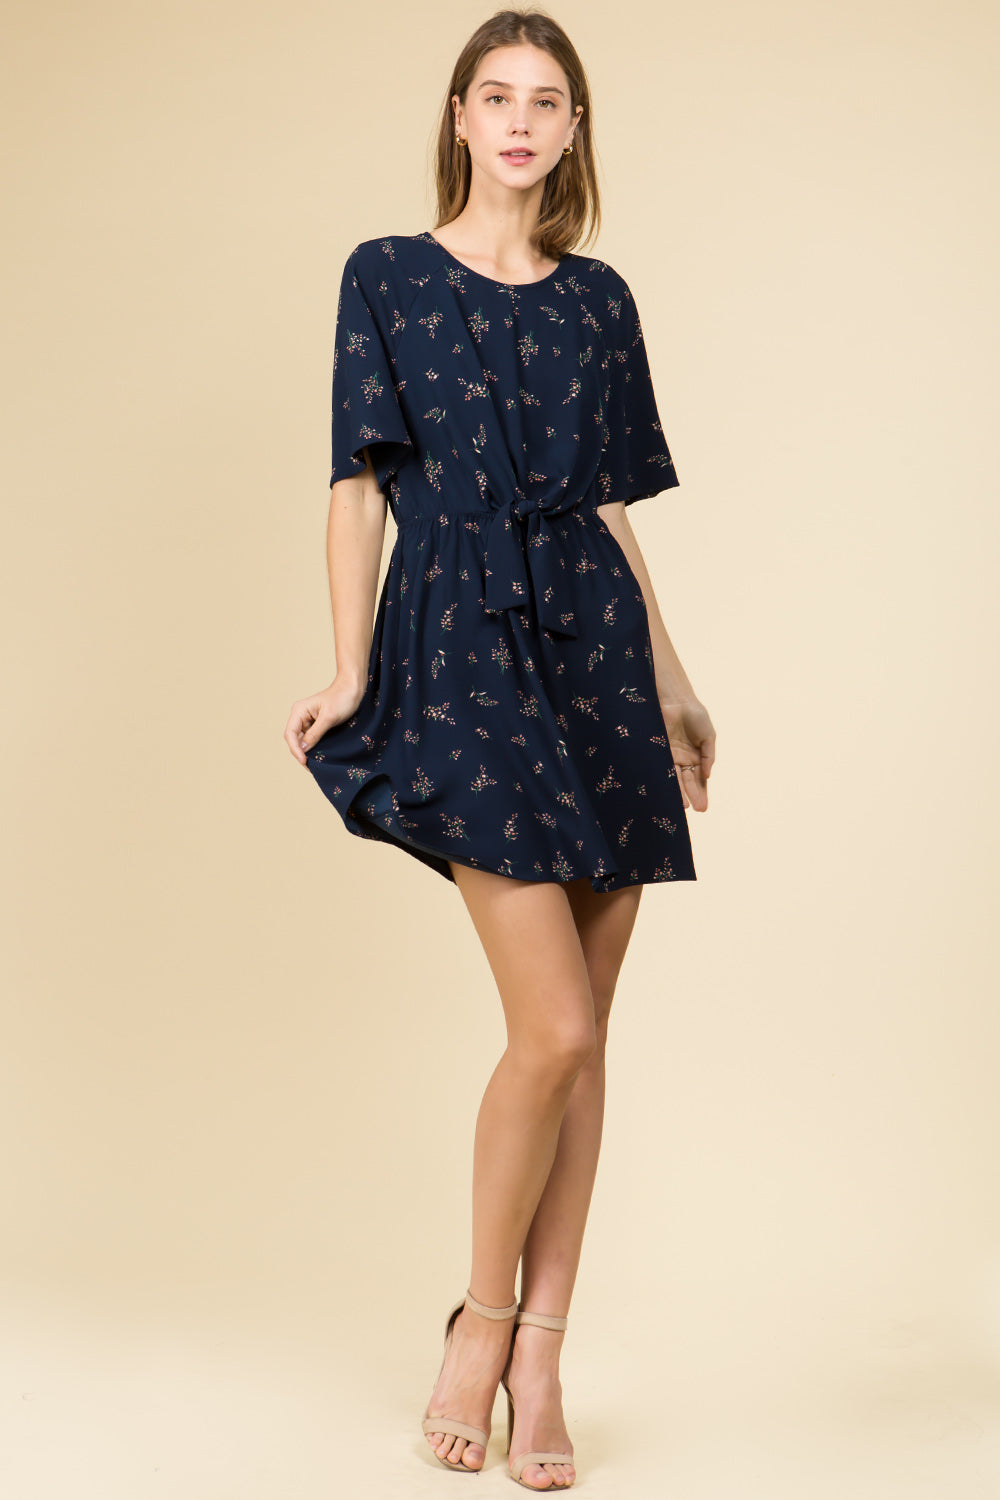 TIE FRONT NAVY FLORAL MINI DRESS